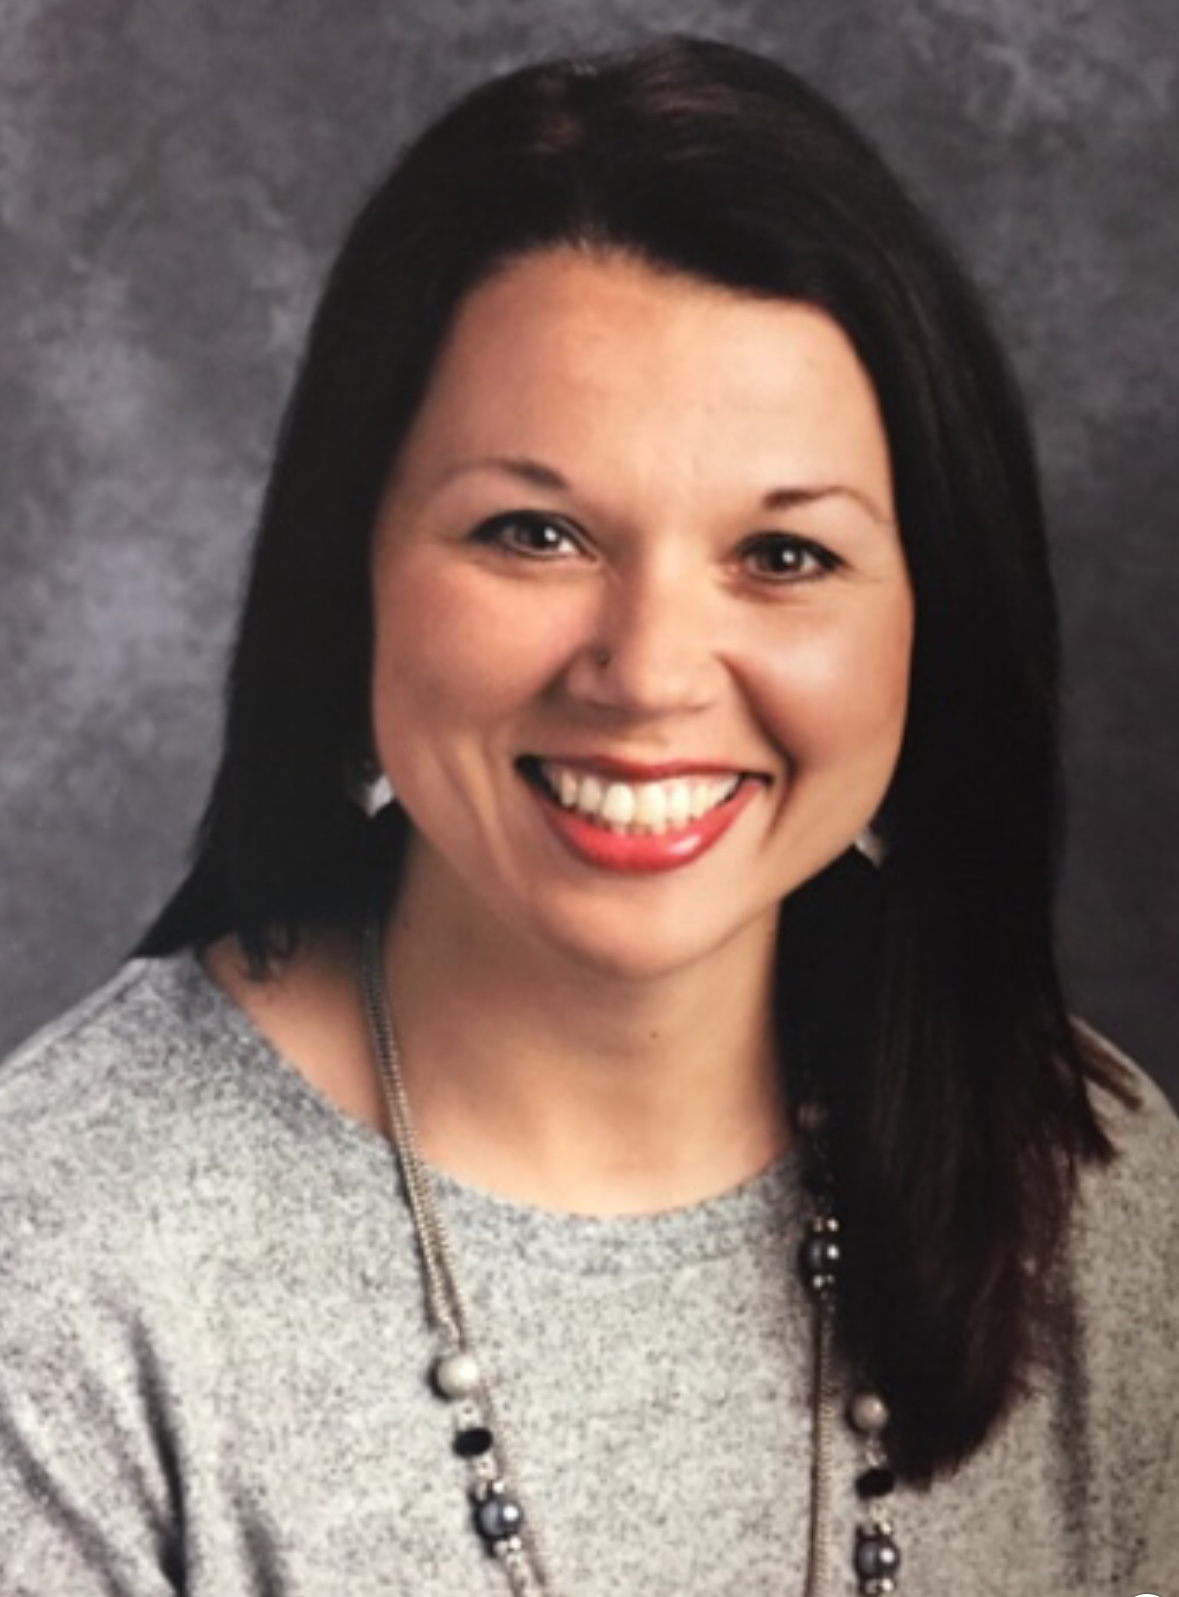 Heather Loeschke, Cannon Falls Independent School District, Cannon Falls, Minnesota